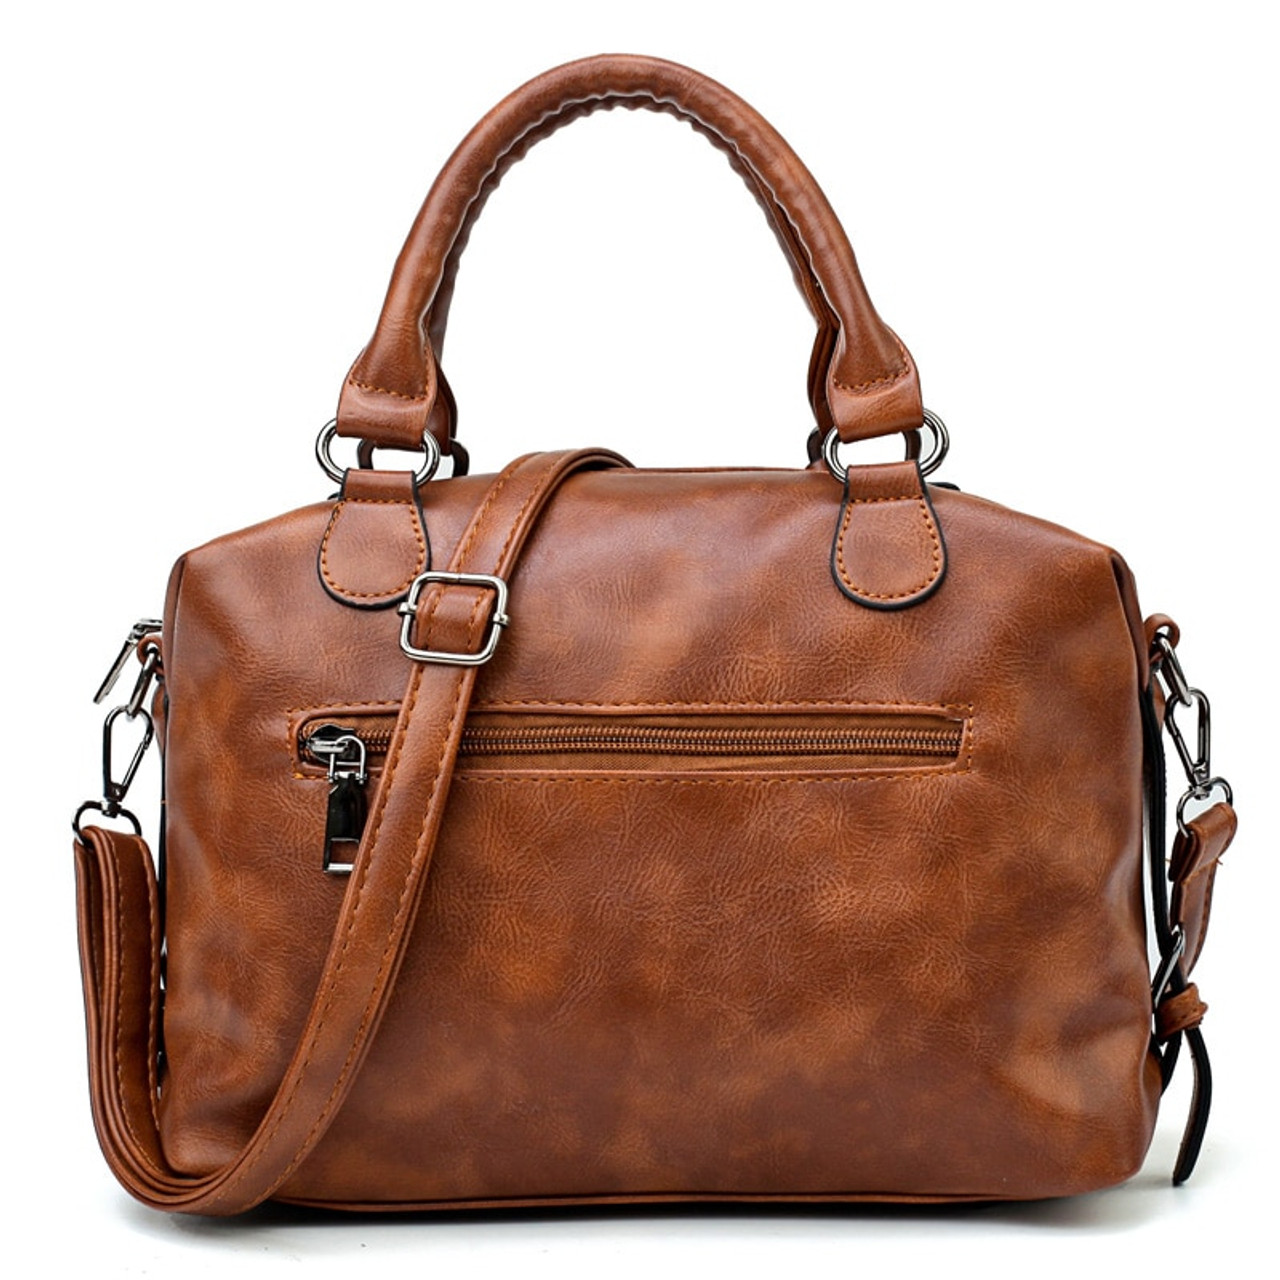 4eacd1e72031 ... Brown Vintage Fashion Casual Tote Boston Bags Handbags Women Famous  Brands Luxury Pu Leather Women Bag ...